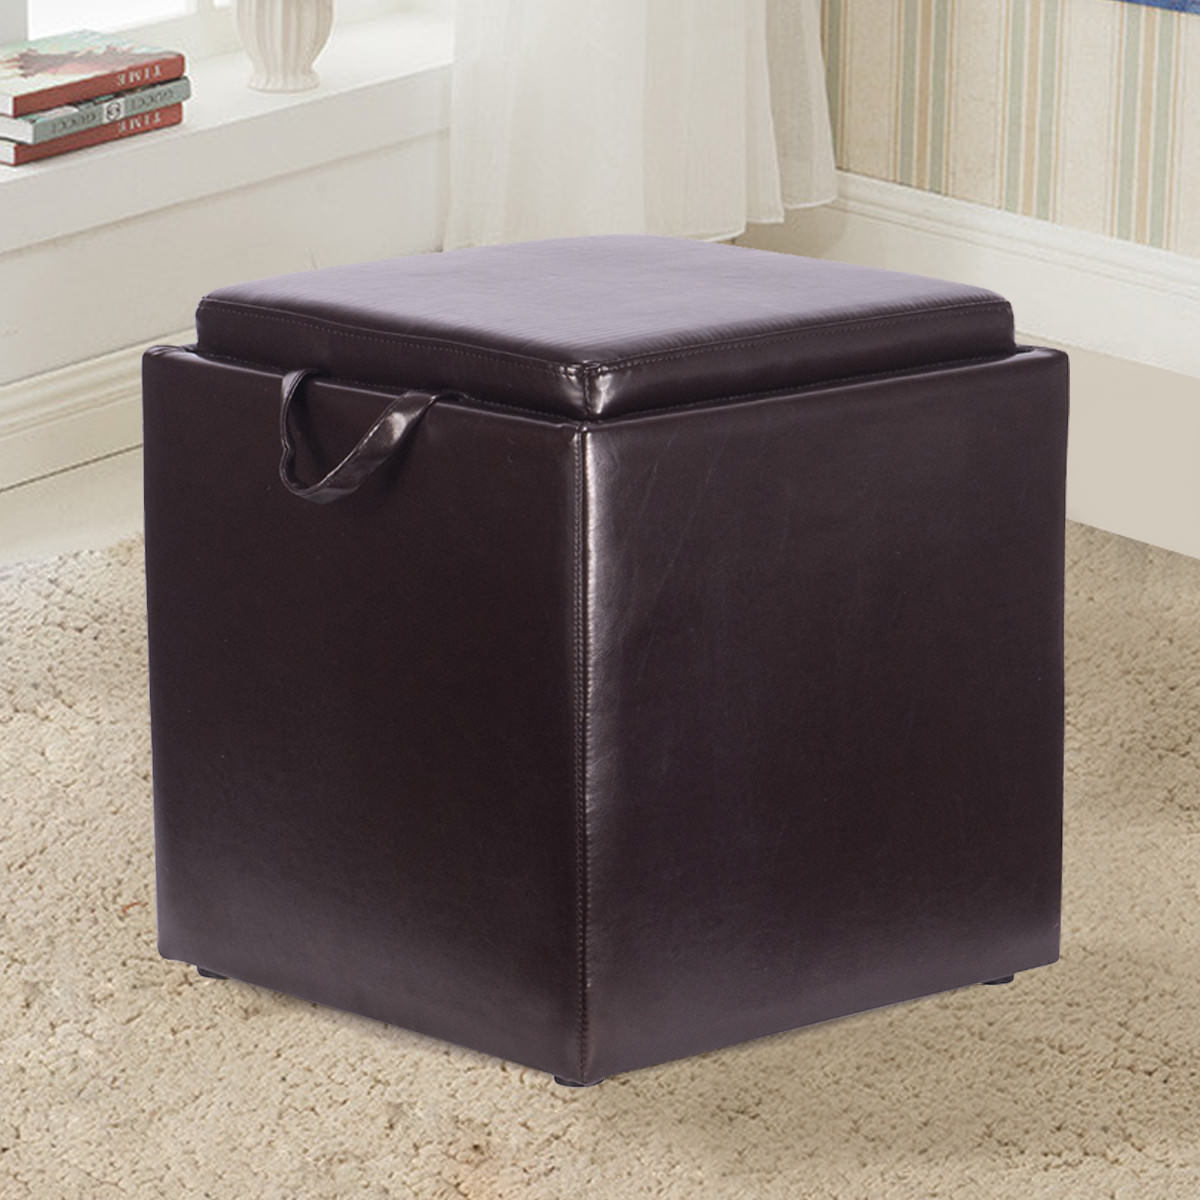 Gymax Brown PU Leather Wood Seat Box Serving Tray Square Storage Ottoman Footstool by Gymax